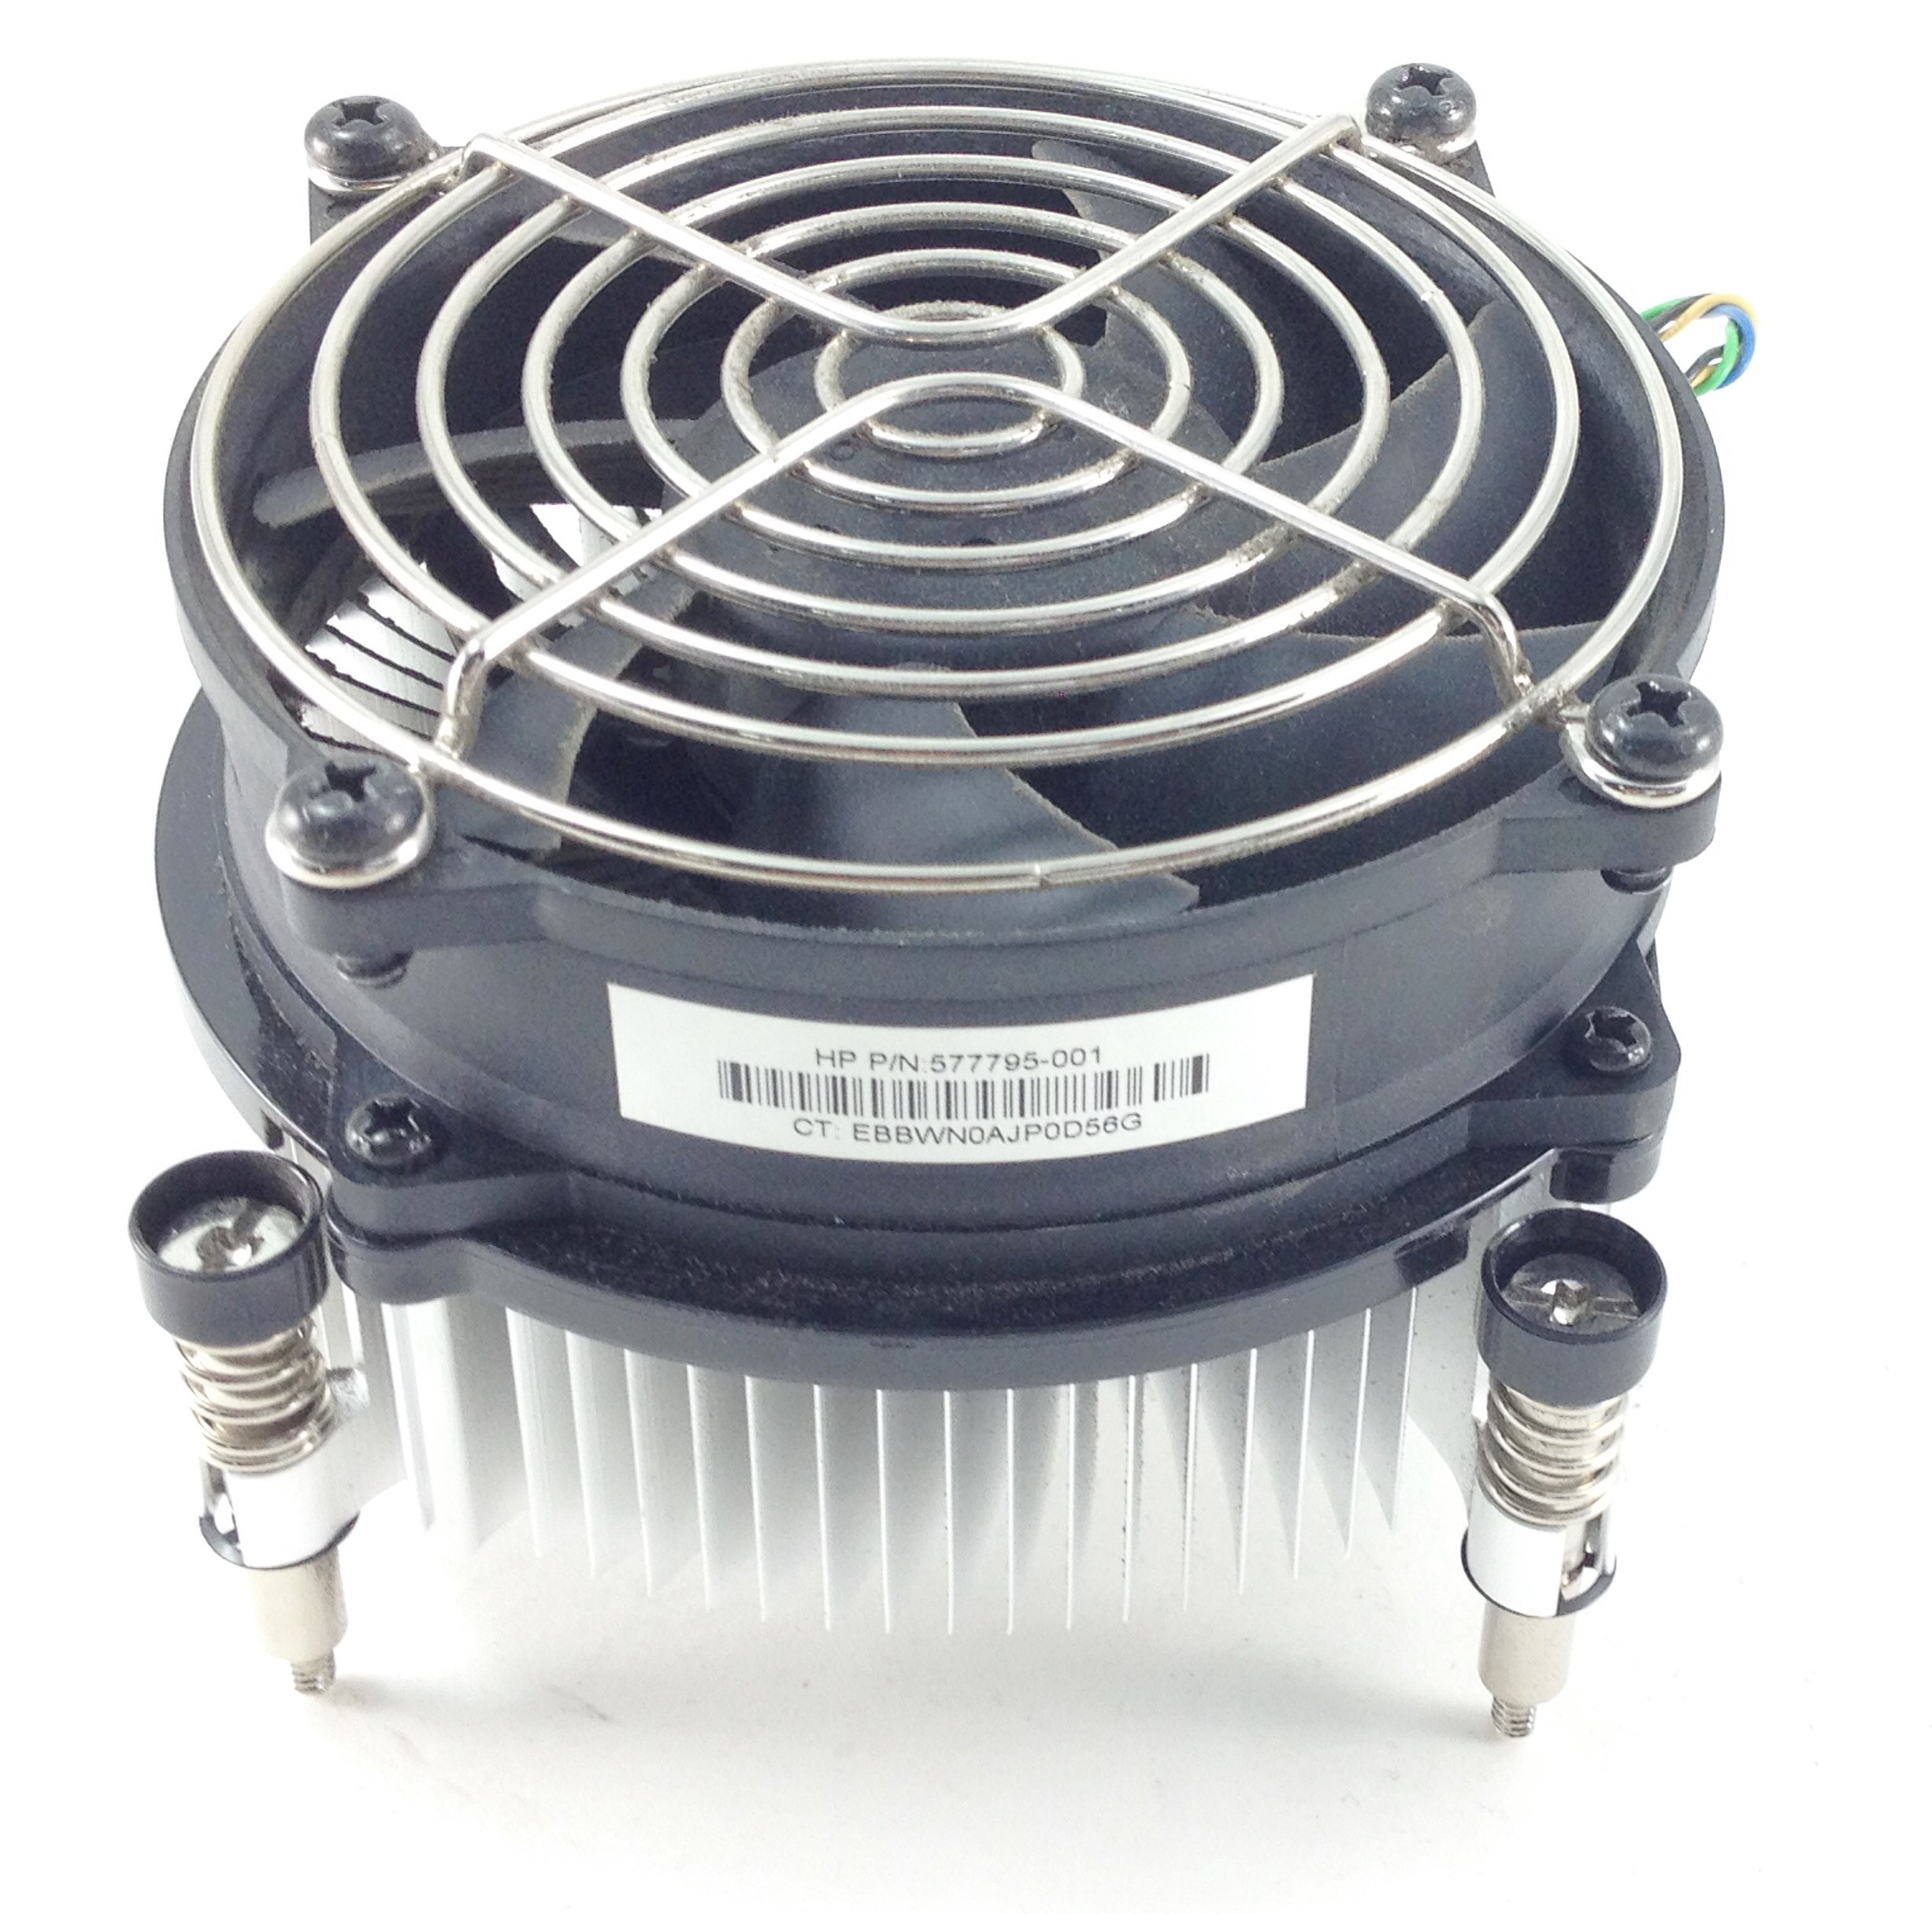 HP Elite 8000 Series Heatsink (577795-001)